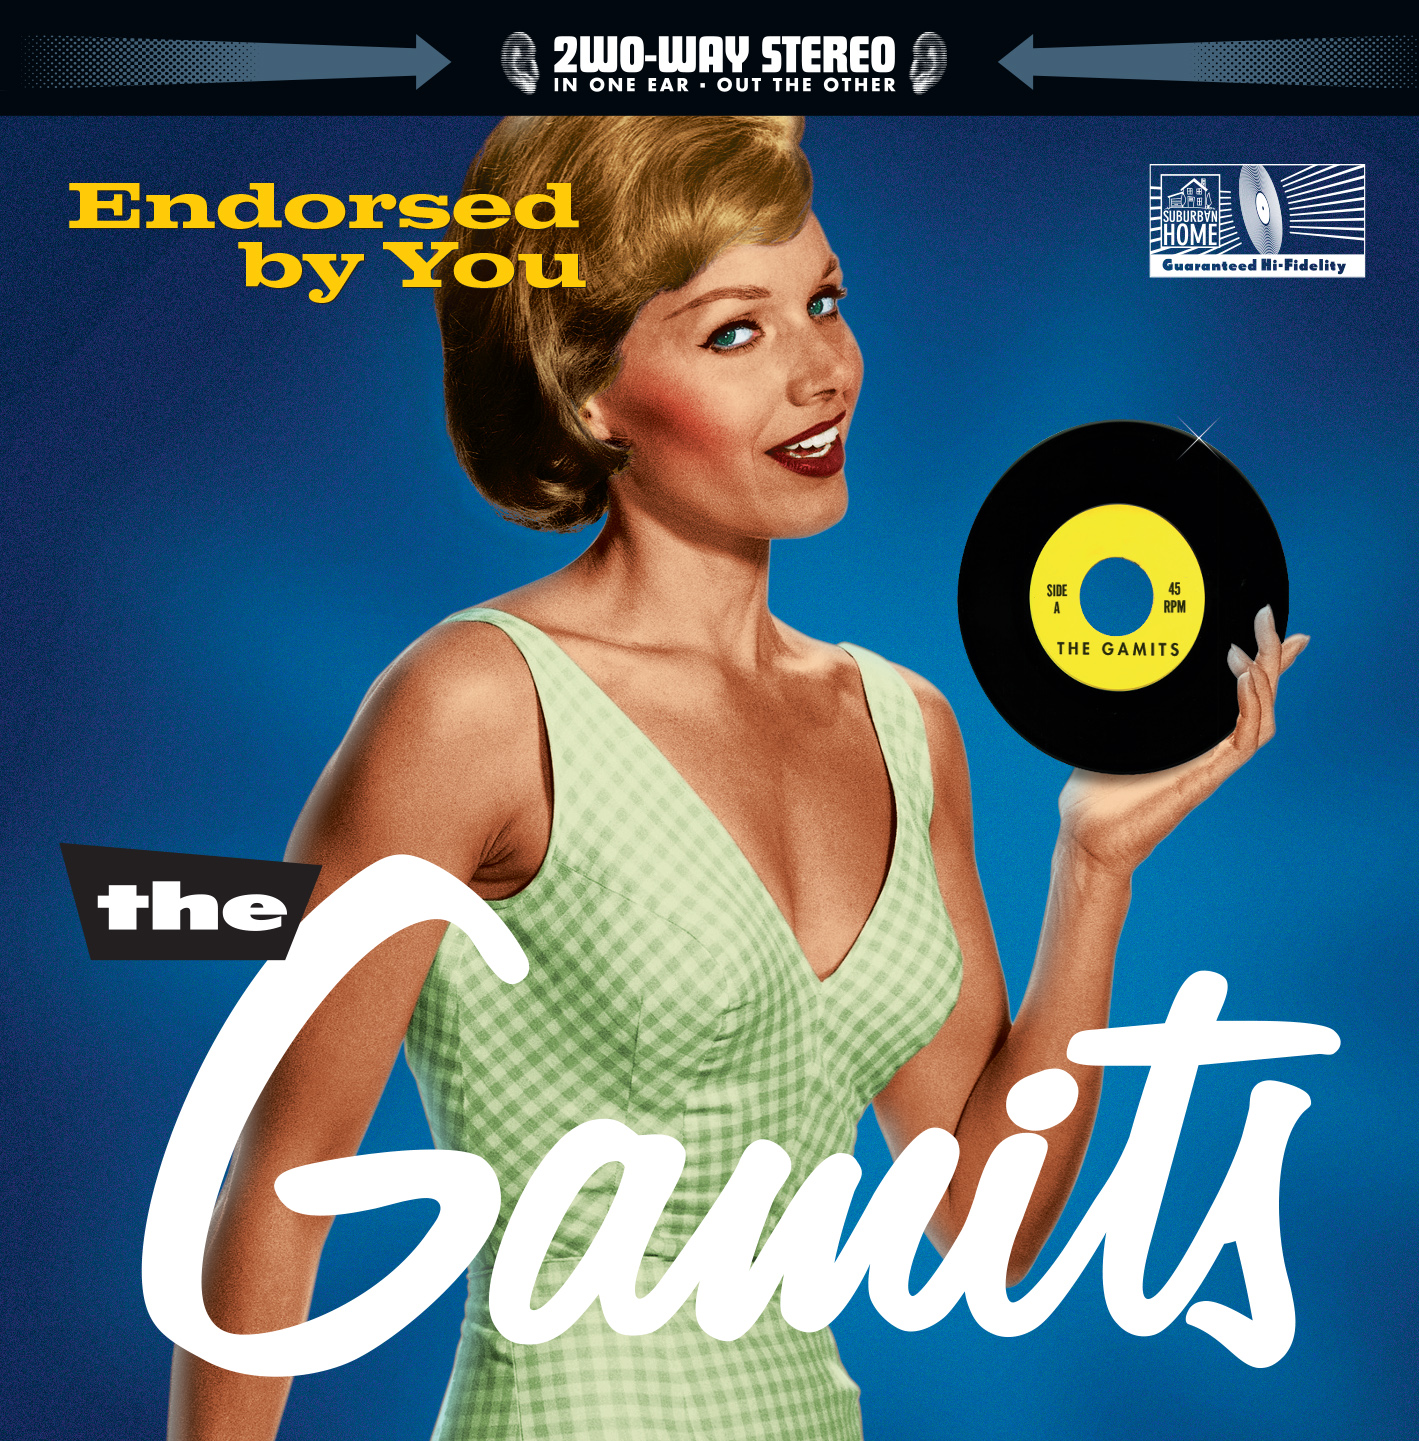 The Gamits - Endorsed by You CD cover